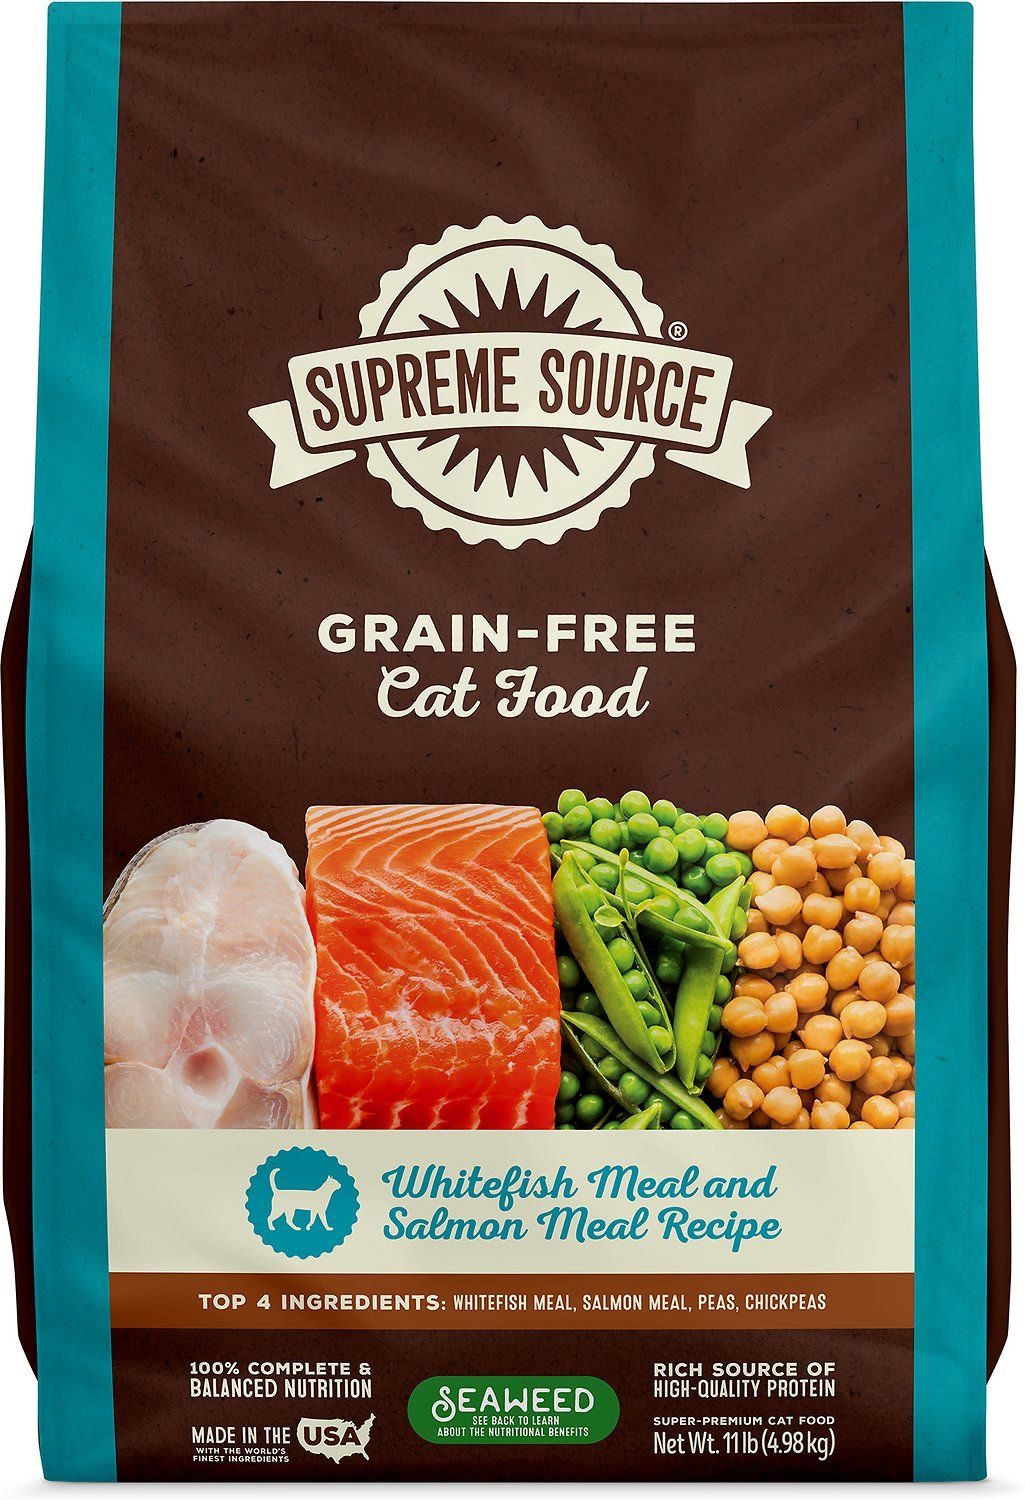 best grain free wet cat food 2020 Supreme Source Whitefish Meal & Salmon Meal Grain Free Dry Cat